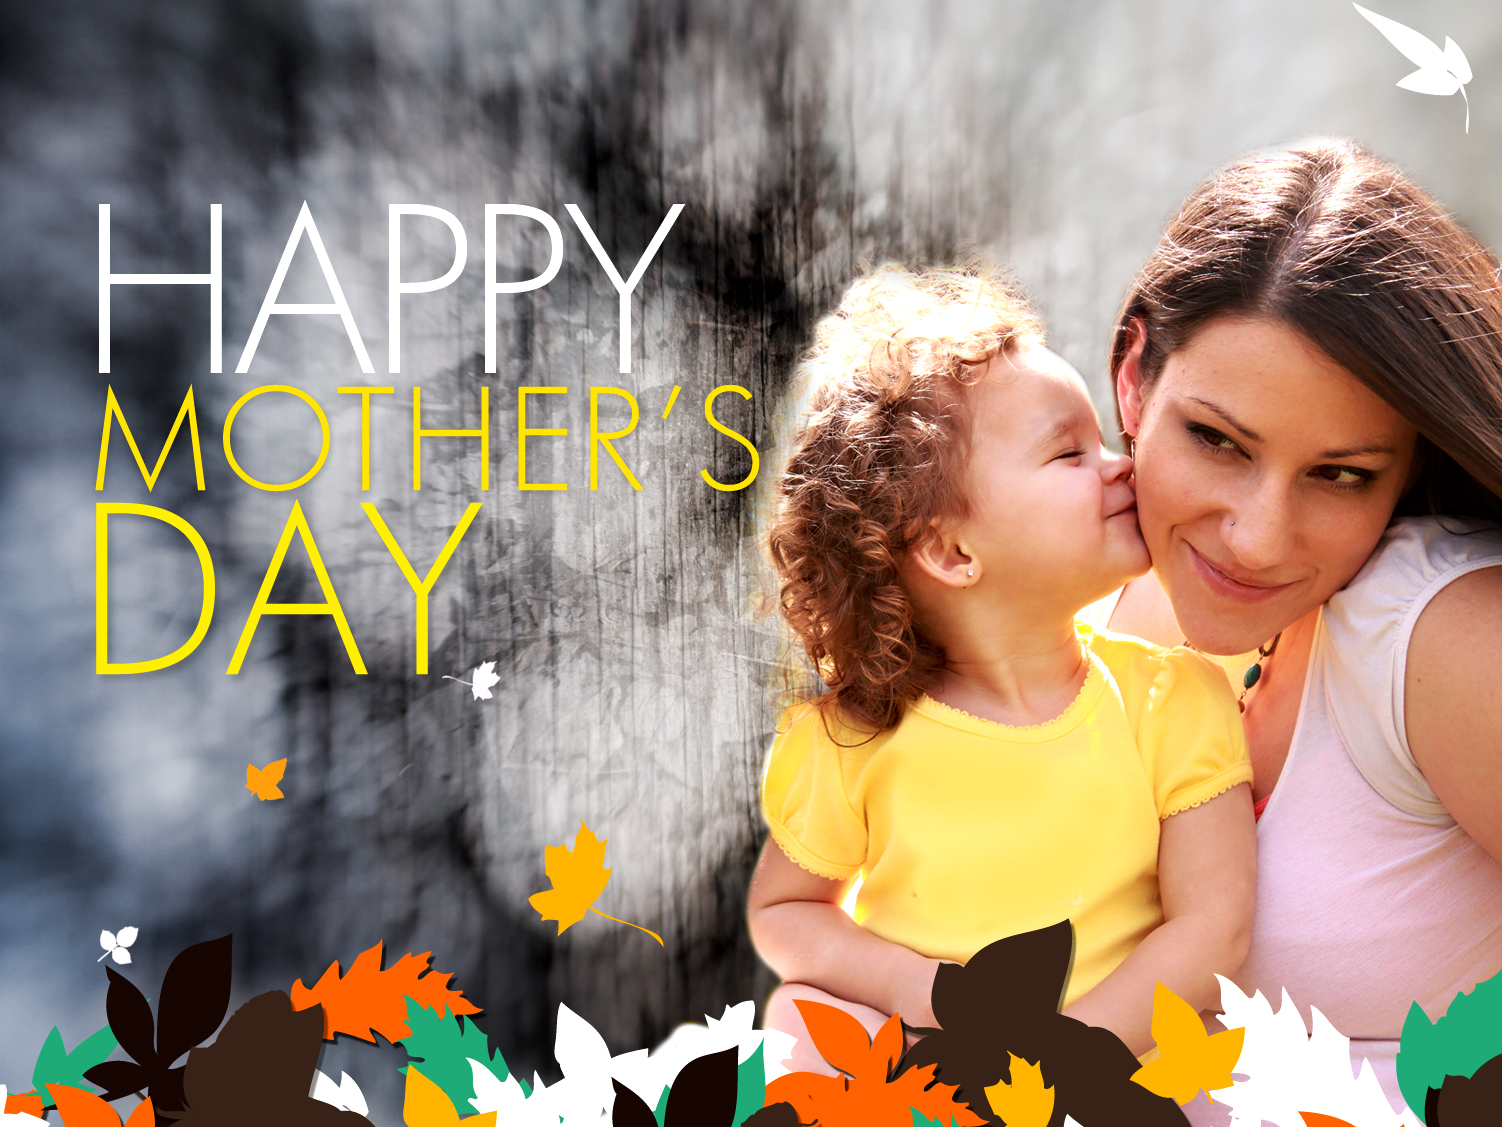 advance happy mothers day wishing facebook cover photos free download